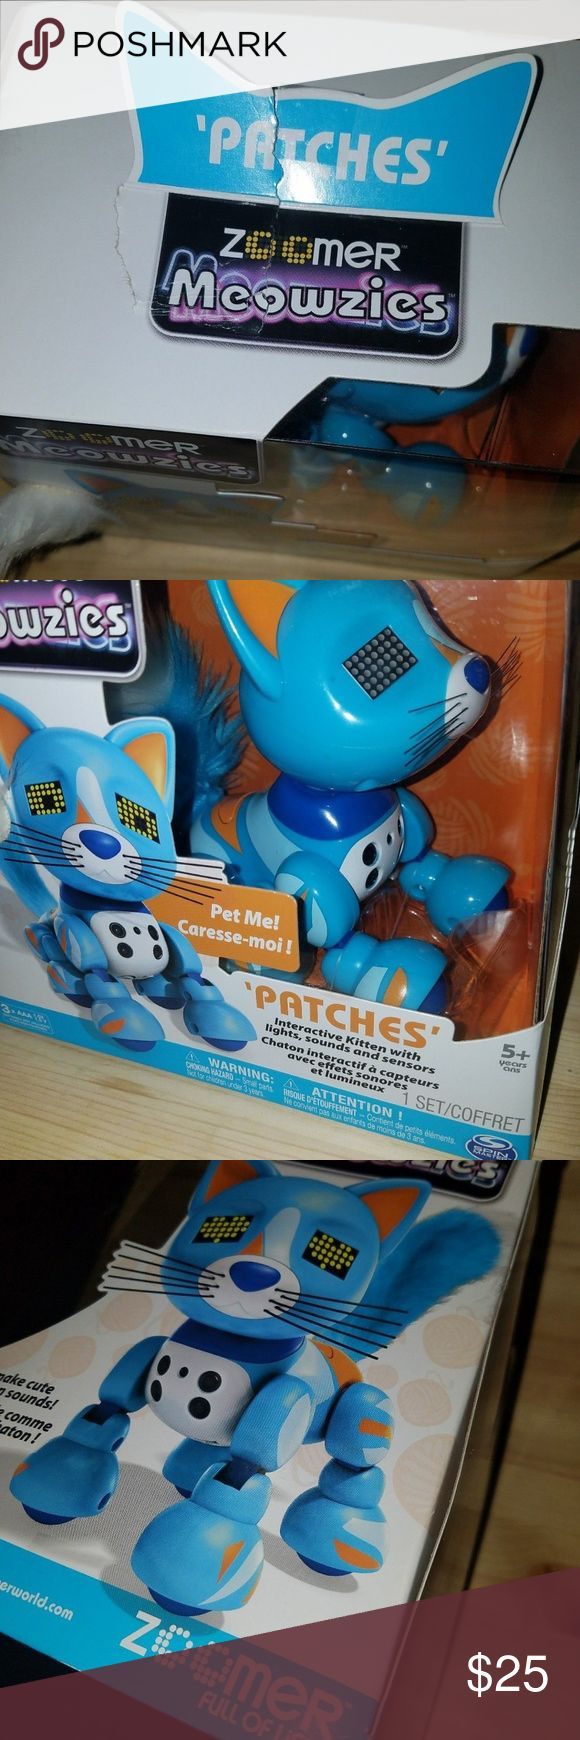 Zoomer Interactive Kitten W Lights Sounds Sensors With Images Kittens Things To Sell Kids Shop